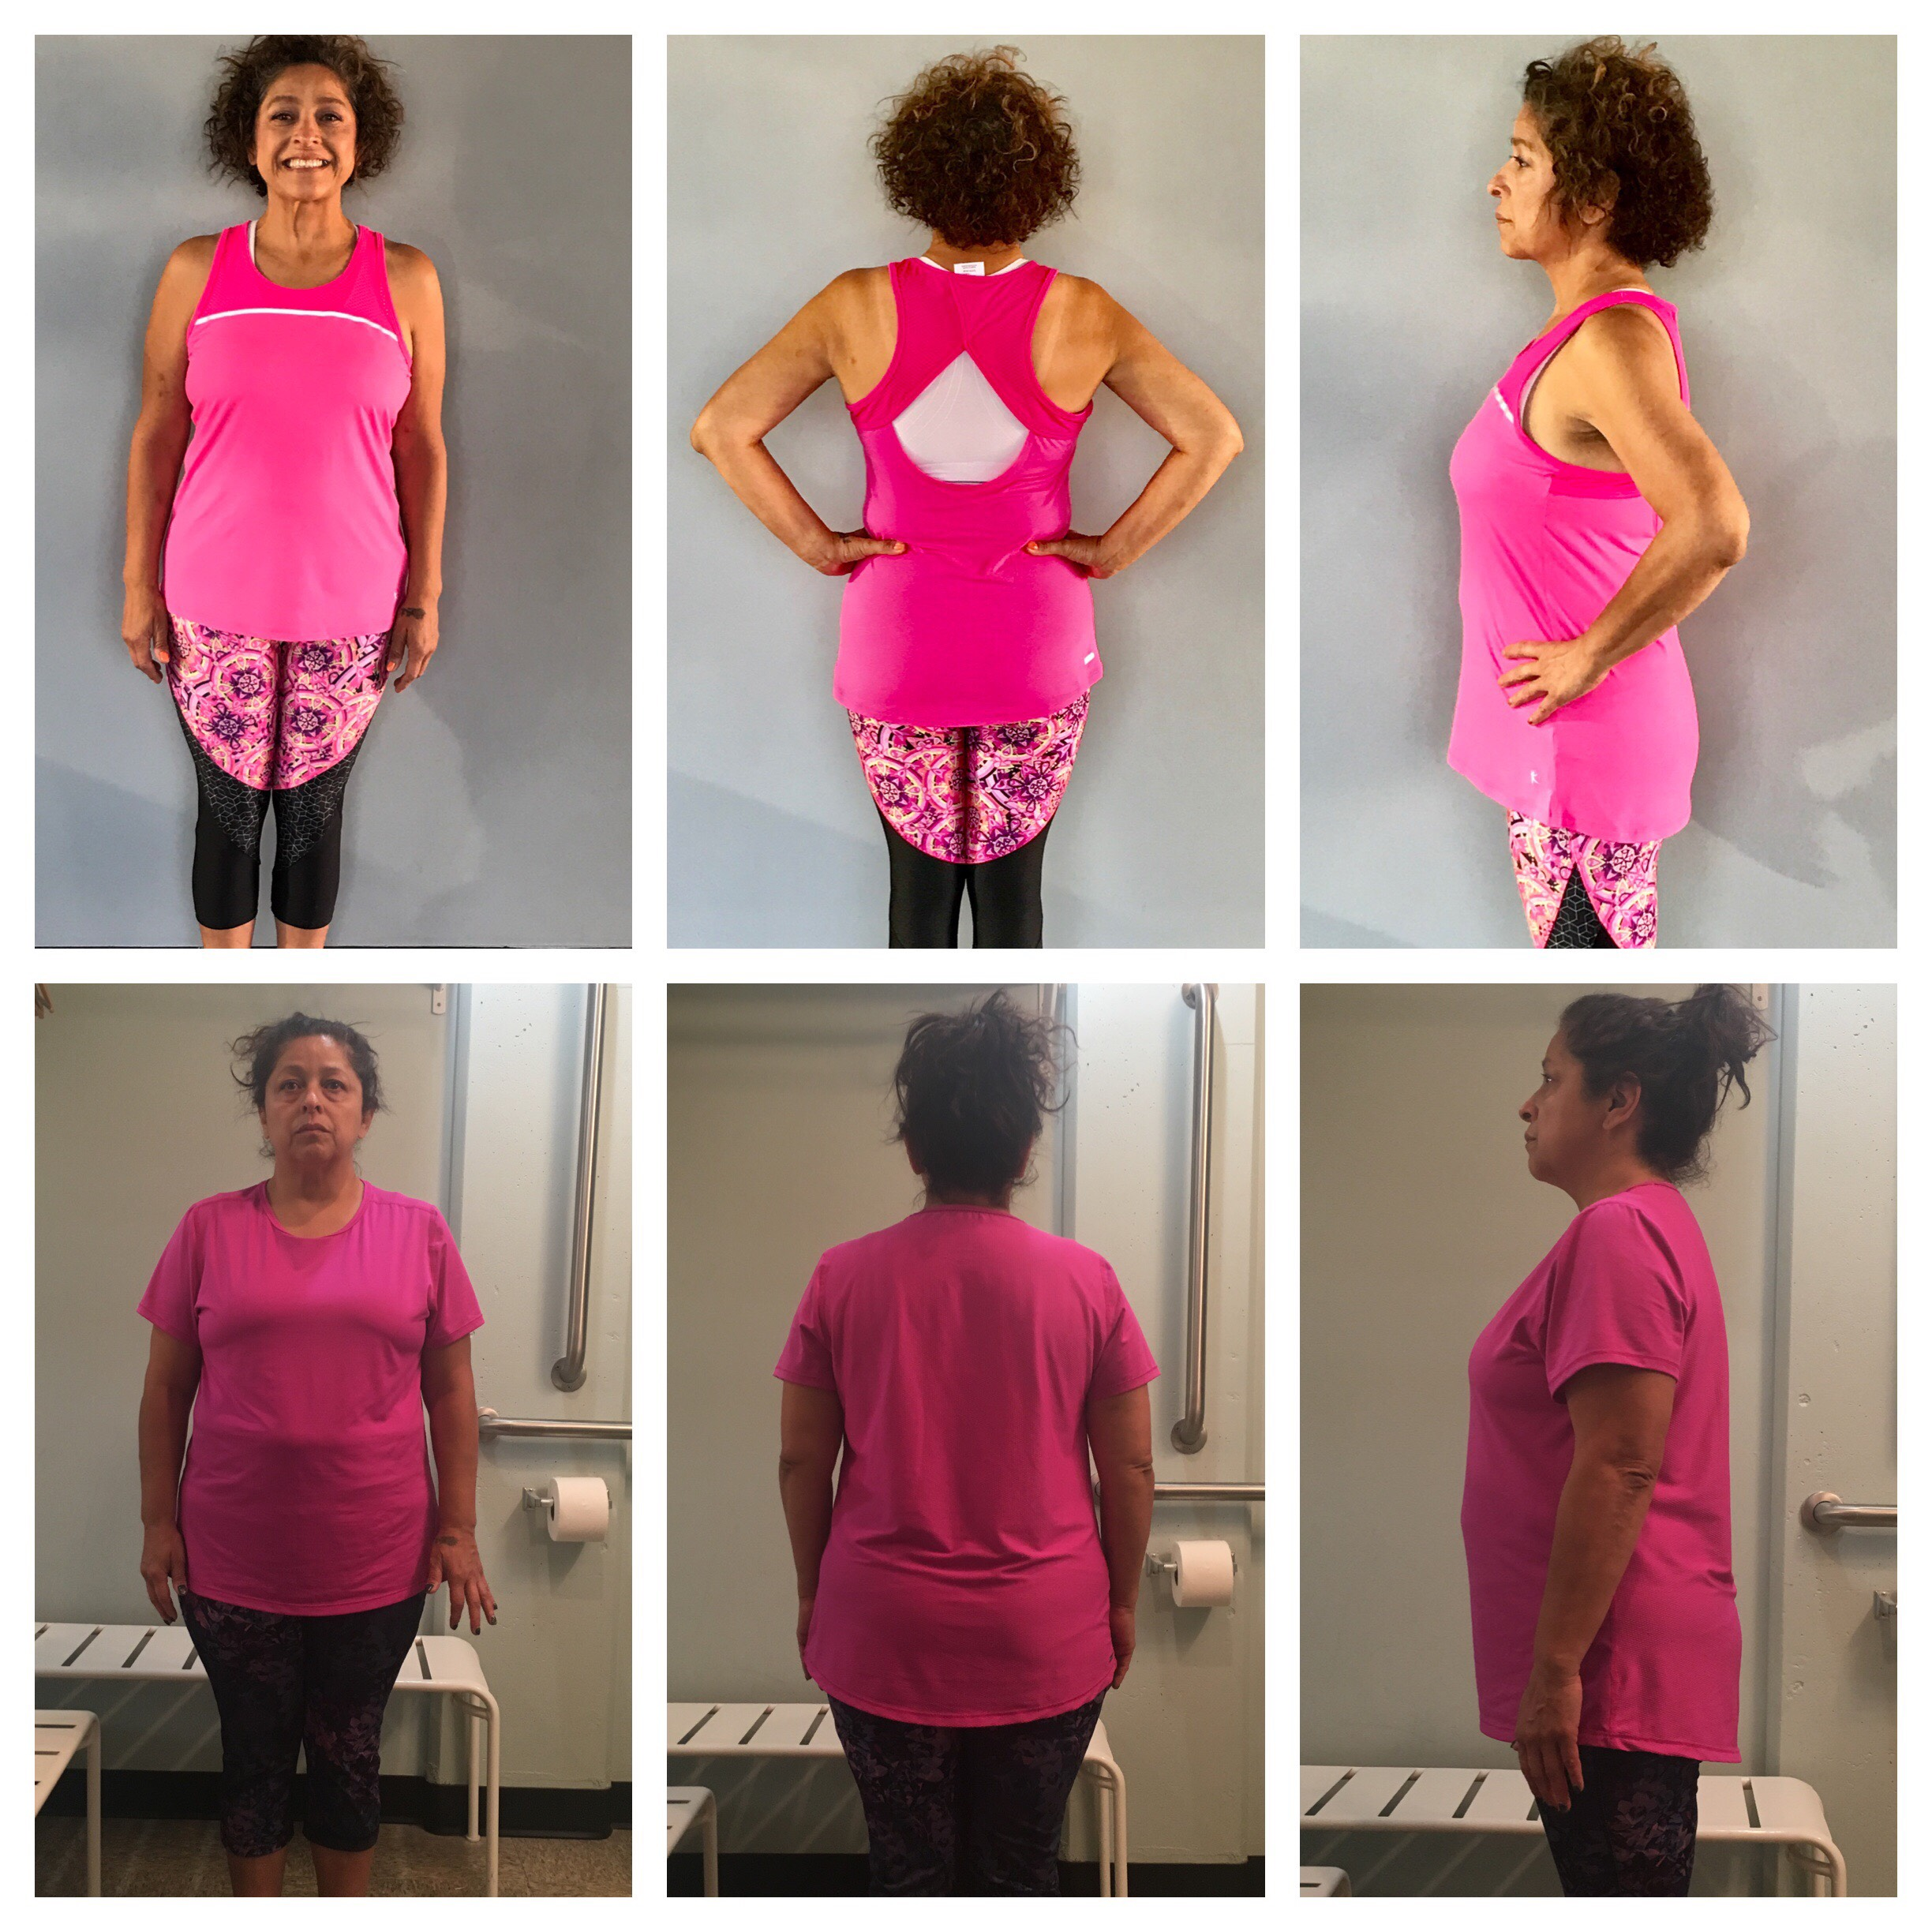 Laura lost 55 lbs in 10 months.